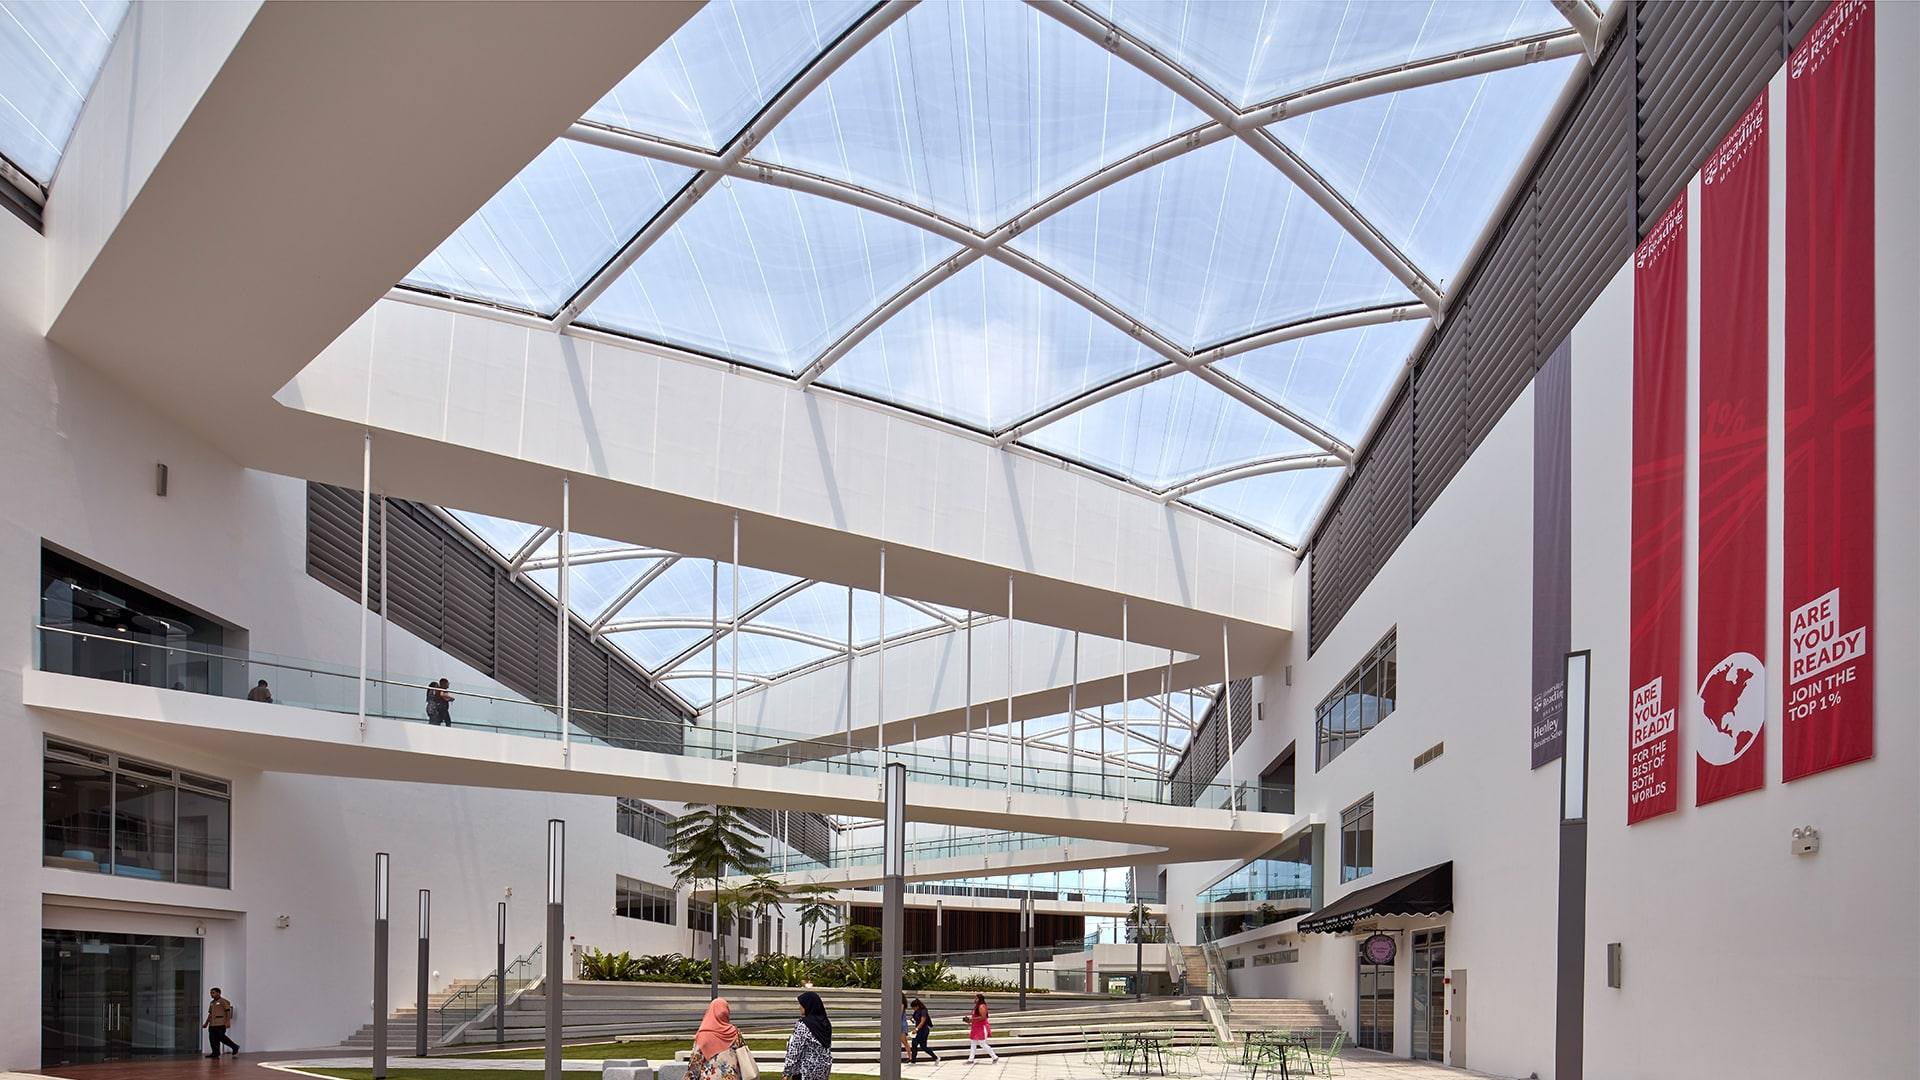 Vector Foiltec designed, fabricated and installed over 2,500 m² of Texlon® ETFE for the university's central atrium in Malaysia.